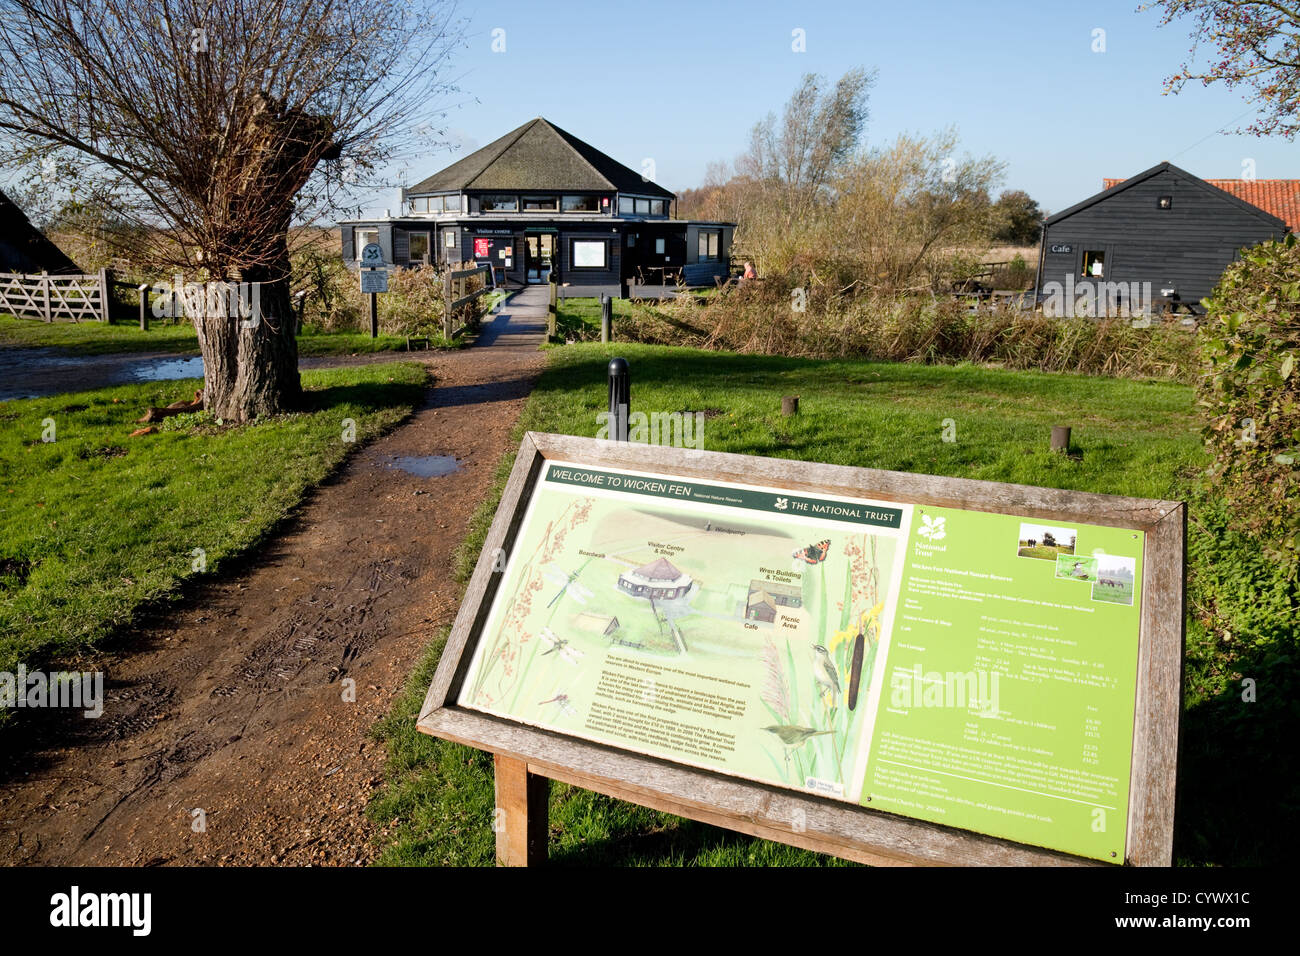 The entrance to Wicken Fen, Cambridgeshire, East Anglia UK - Stock Image